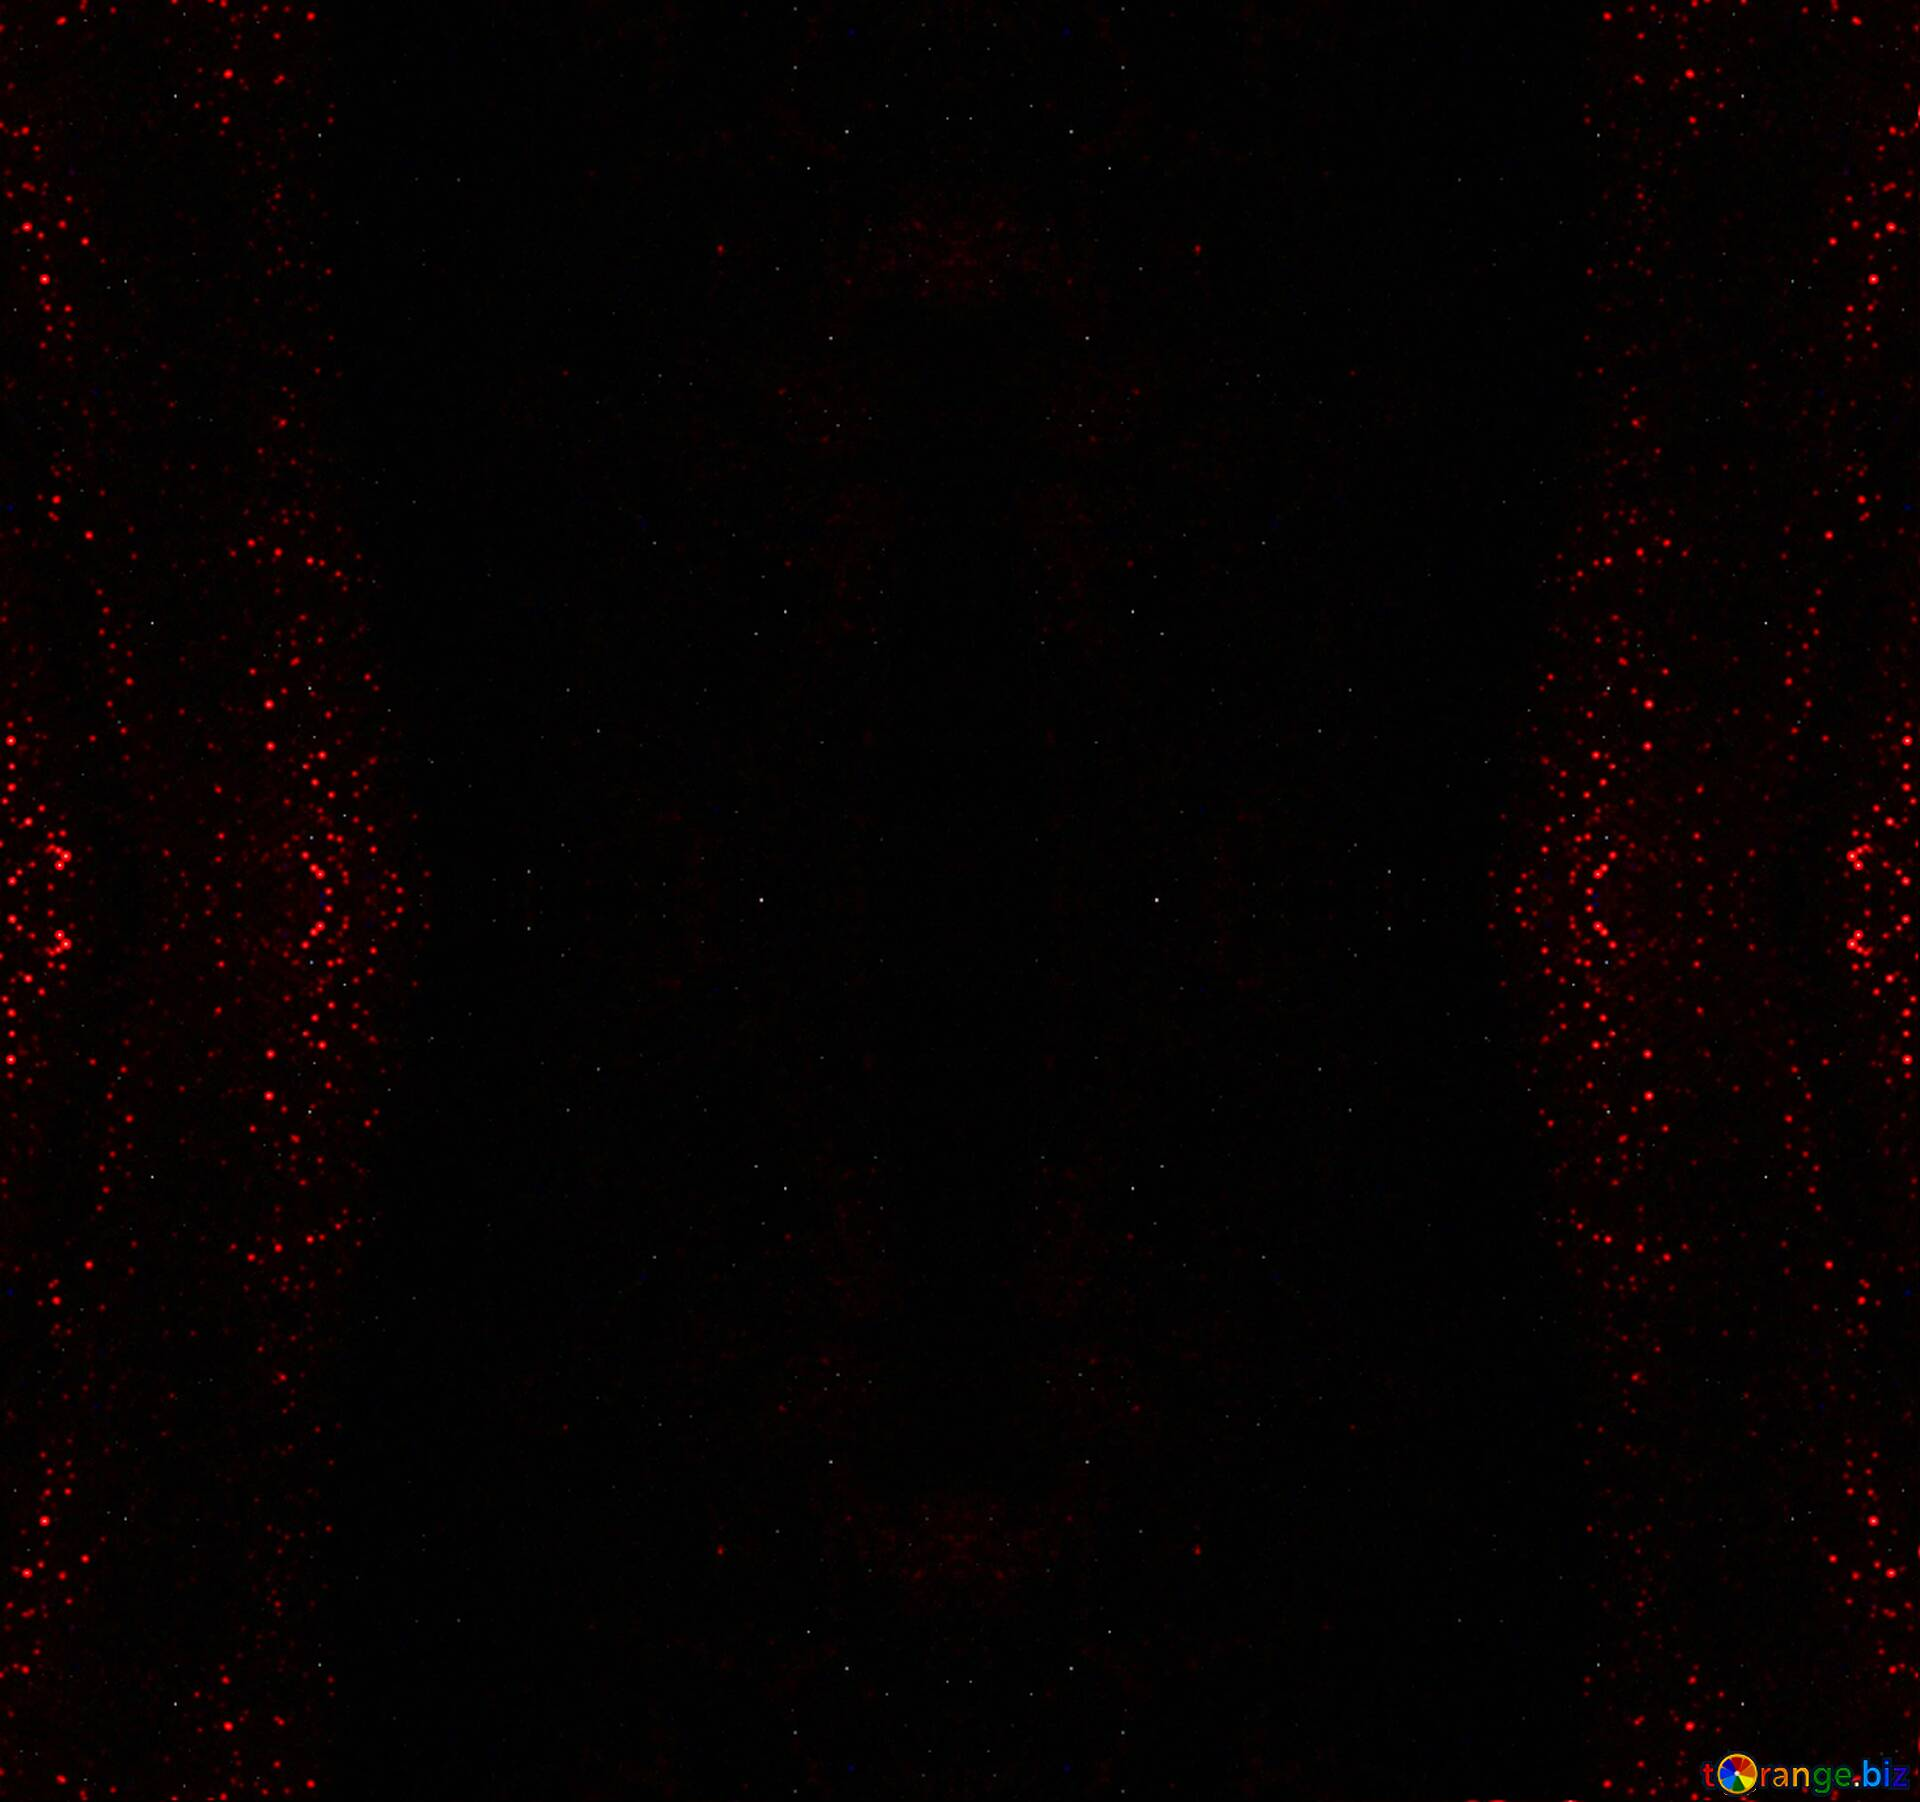 Download Free Picture Black And Red Screen On Cc By License Free Image Stock Torange Biz Fx 17209